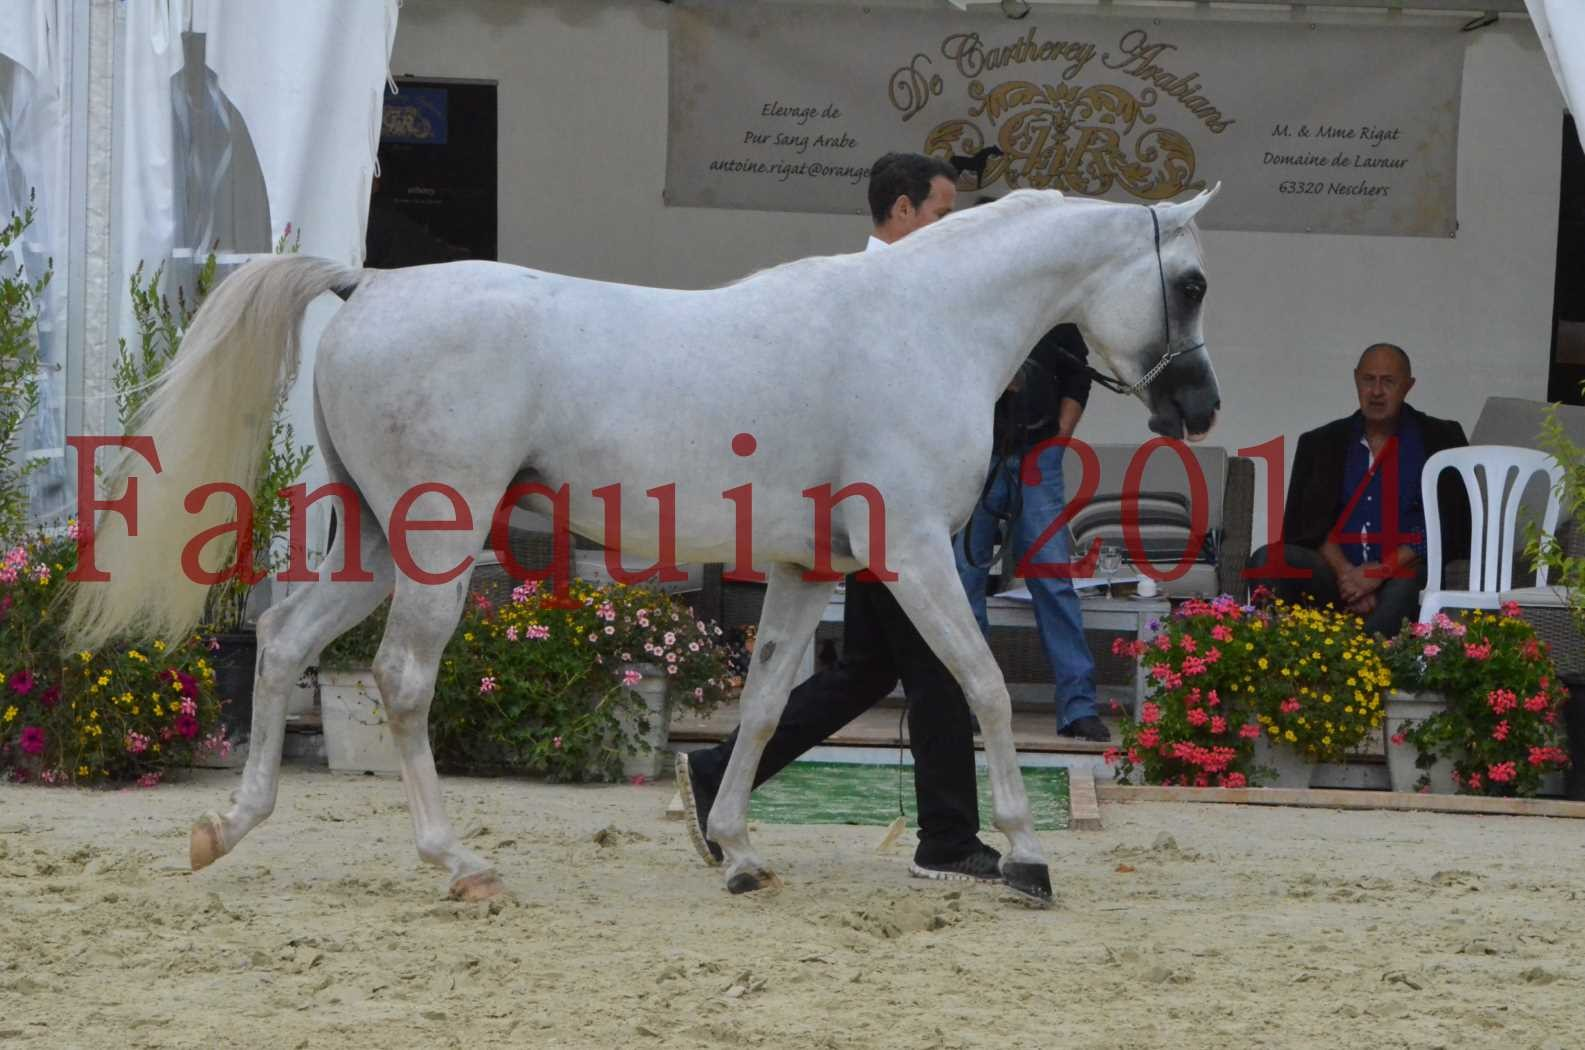 CHAMPIONNAT DE FRANCE 2014 A POMPADOUR - Sélection - FA STARLIGHT - 03